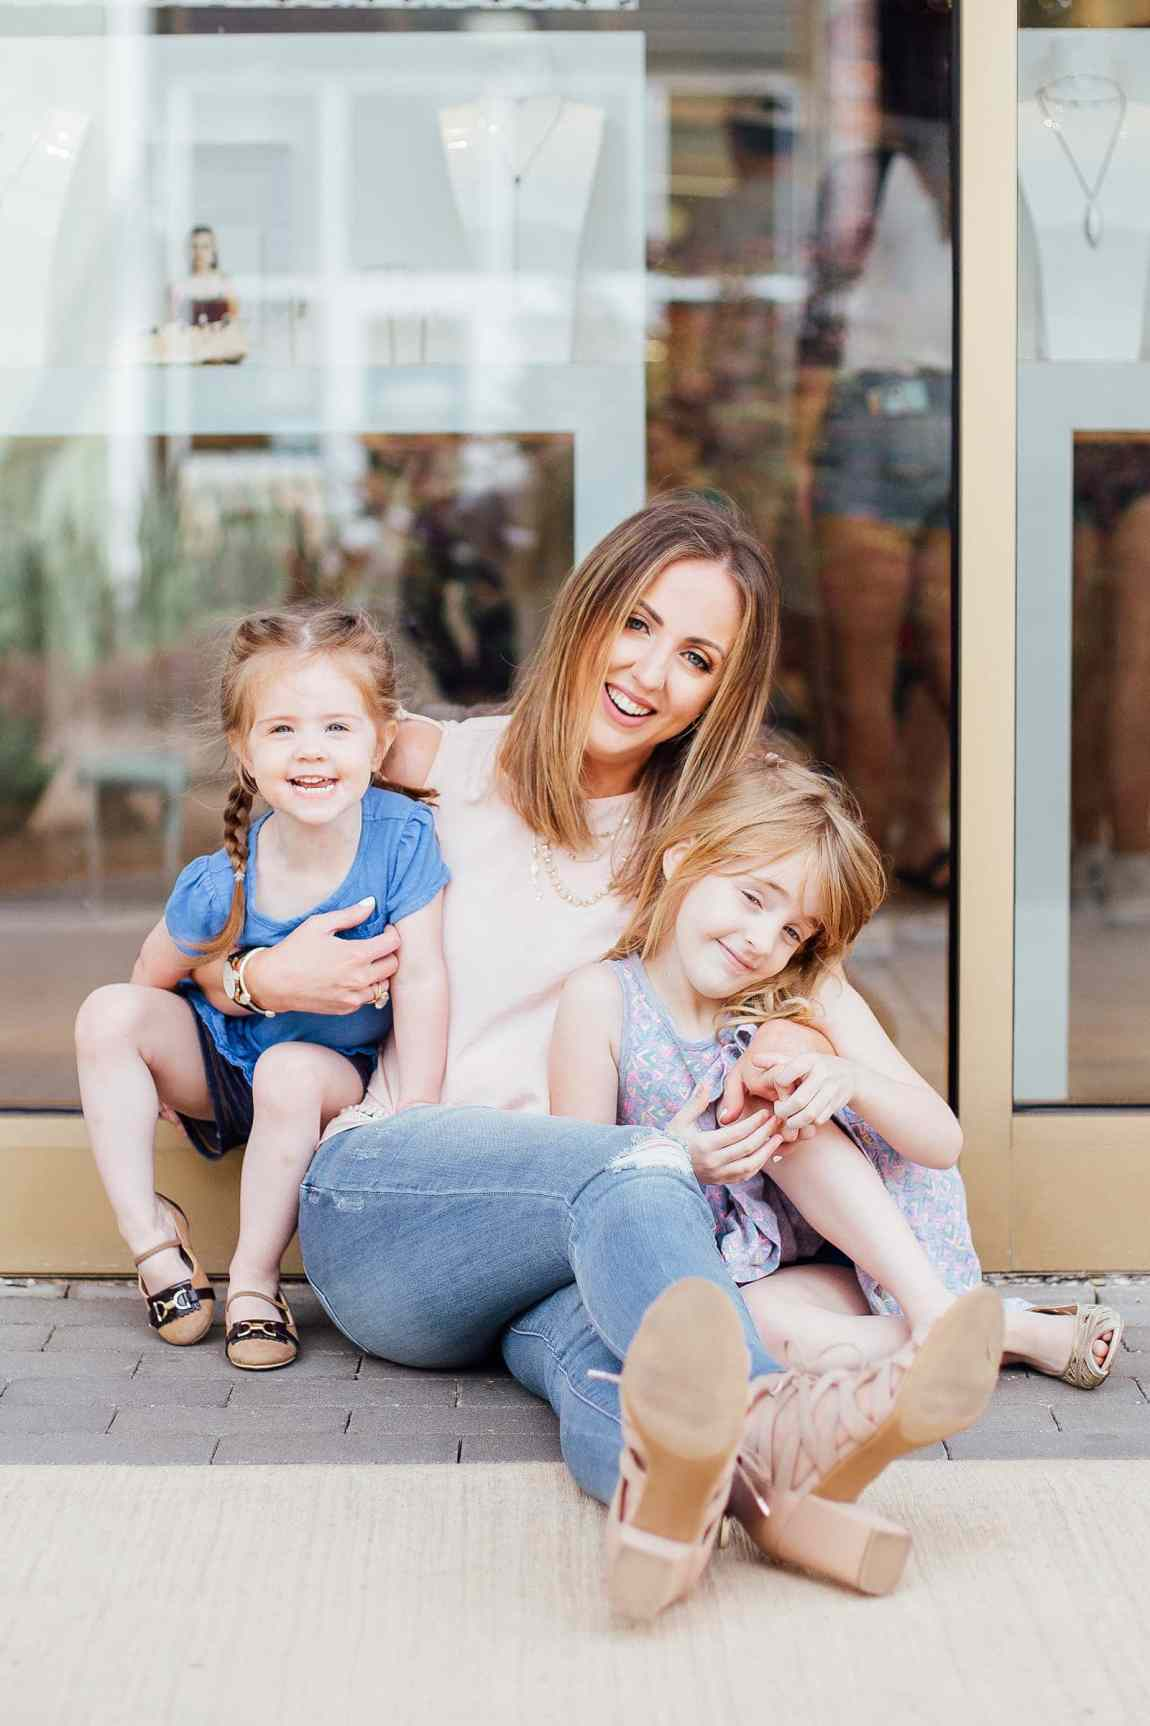 Kendra Scott kid friendly event